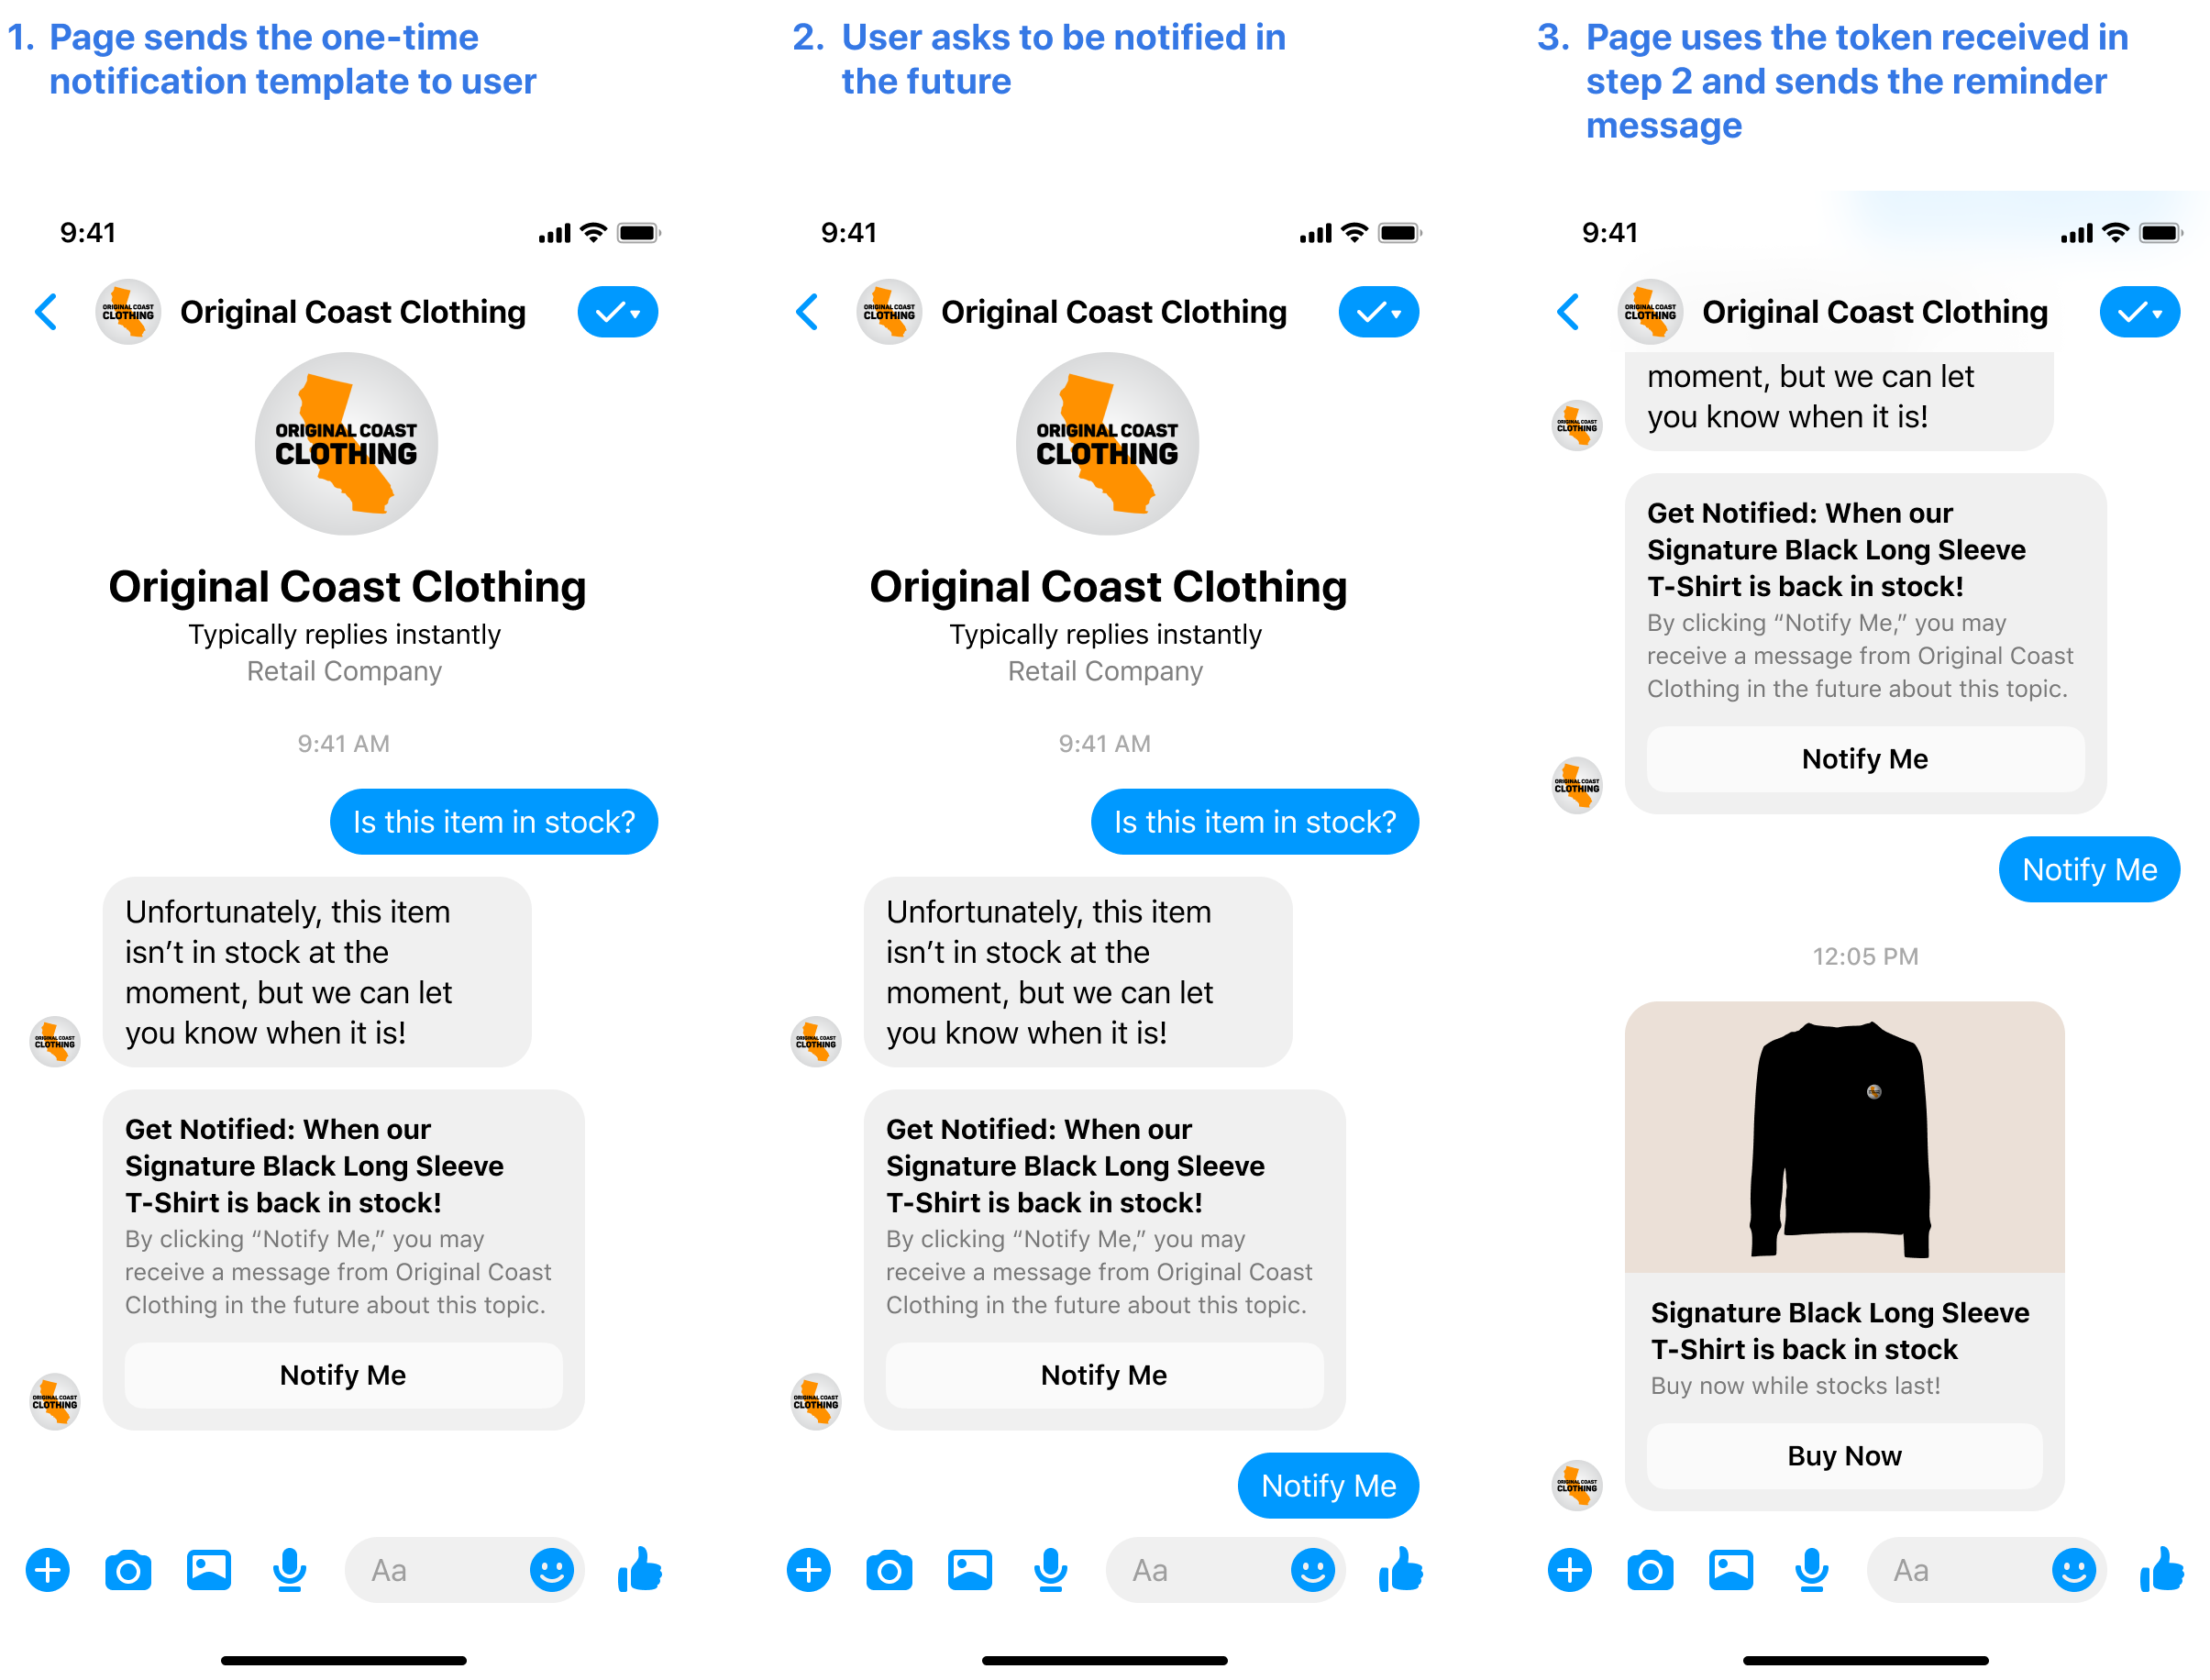 Facebook's Example of the one-time use feature